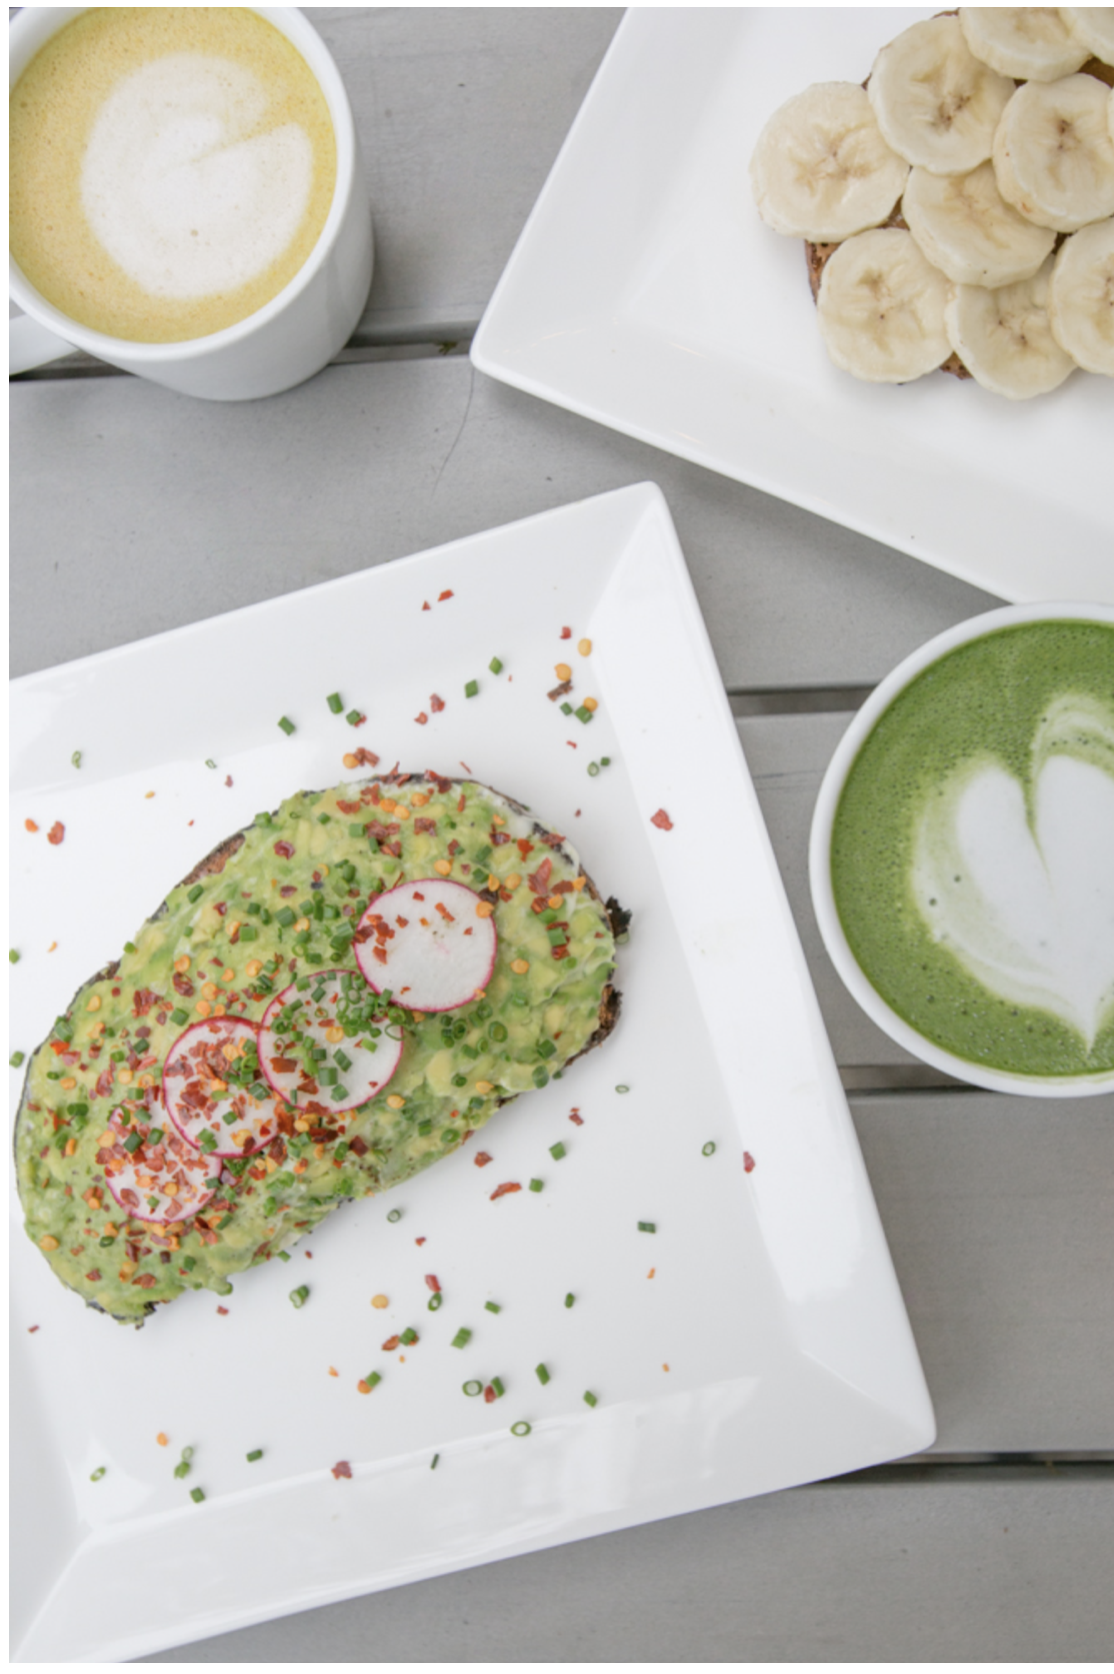 As Quoted - Toast and a hot beverage are the name of the game at As Quoted. We love to power up for the day with an Avocado Toast or Sweet Toast with Maca + Banana, paired with a Matcha or Turmeric Latte. Set in a modern, clean space, As Quoted is typically bustling with energy to start the day. If it's warm enough, grab a coveted table out front to take in the scenery before embarking on the day's adventure.visit website